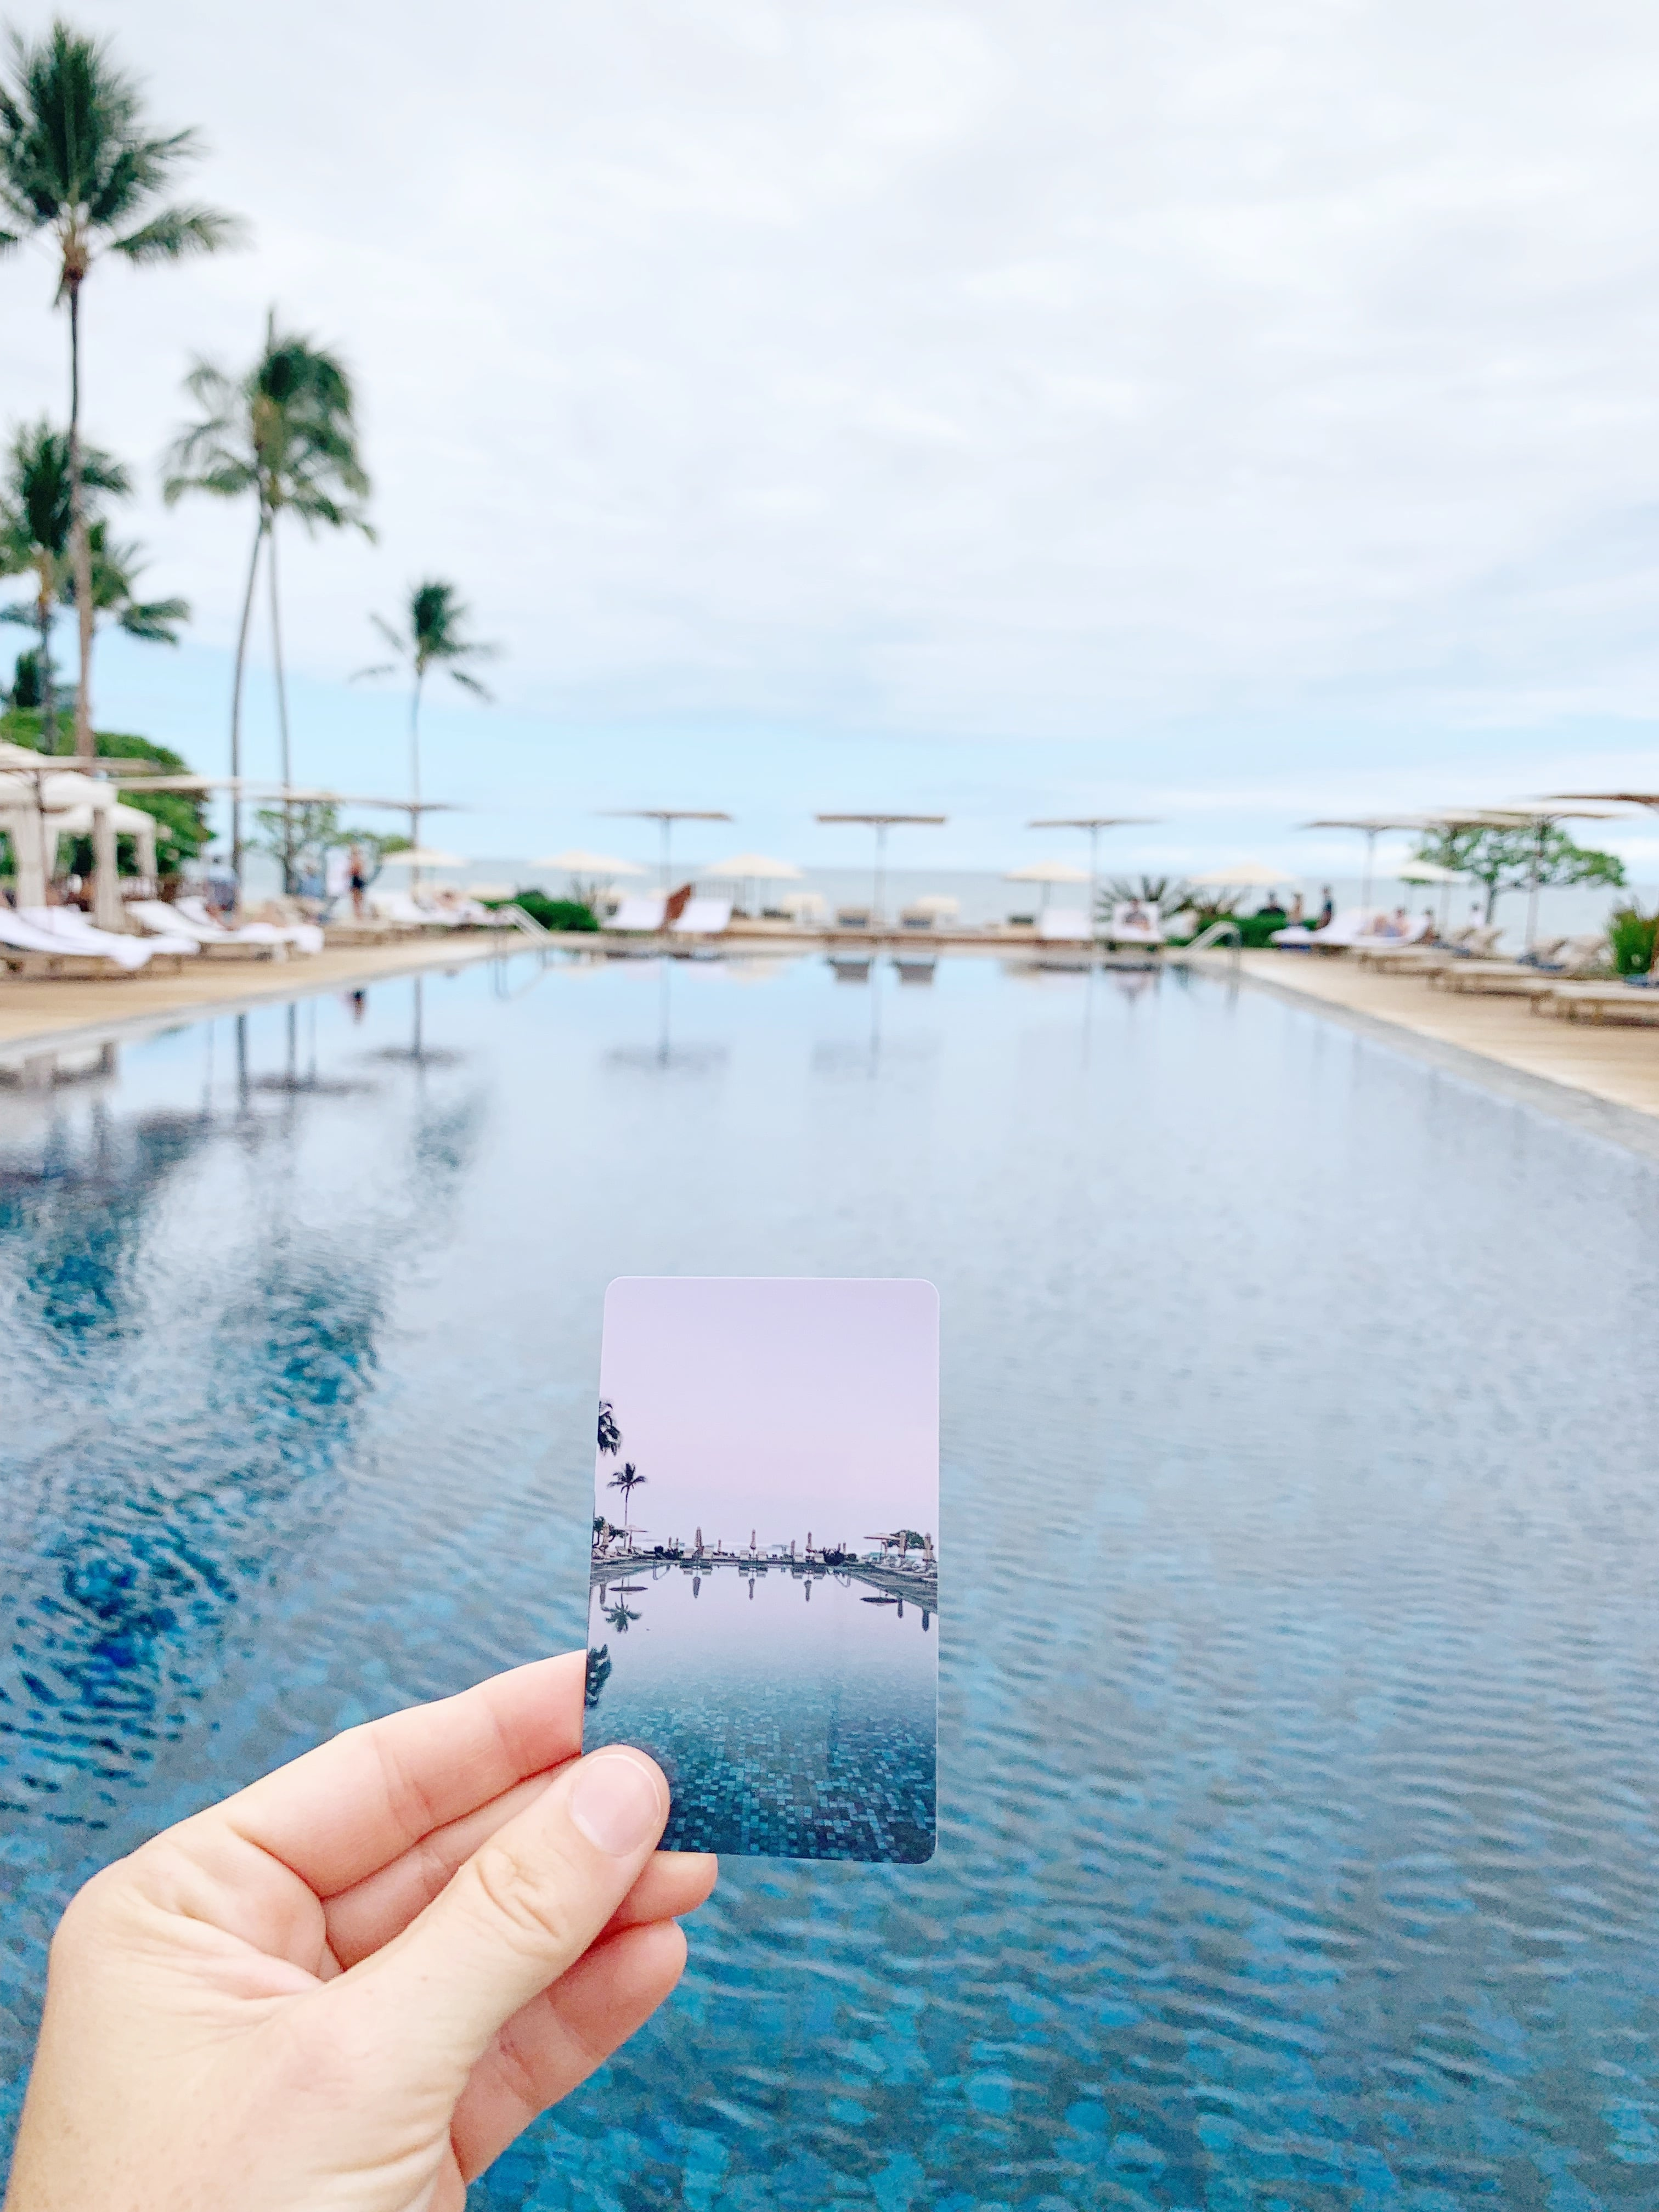 Our Stay At Four Seasons Resort Hualalai - Sharing all the details of our stay at Four Seasons Resort Hualalai on the Big Island of Hawaii! | Four Seasons Hualalai Review - Big Island Hawaii - Hawaii Hotel Review